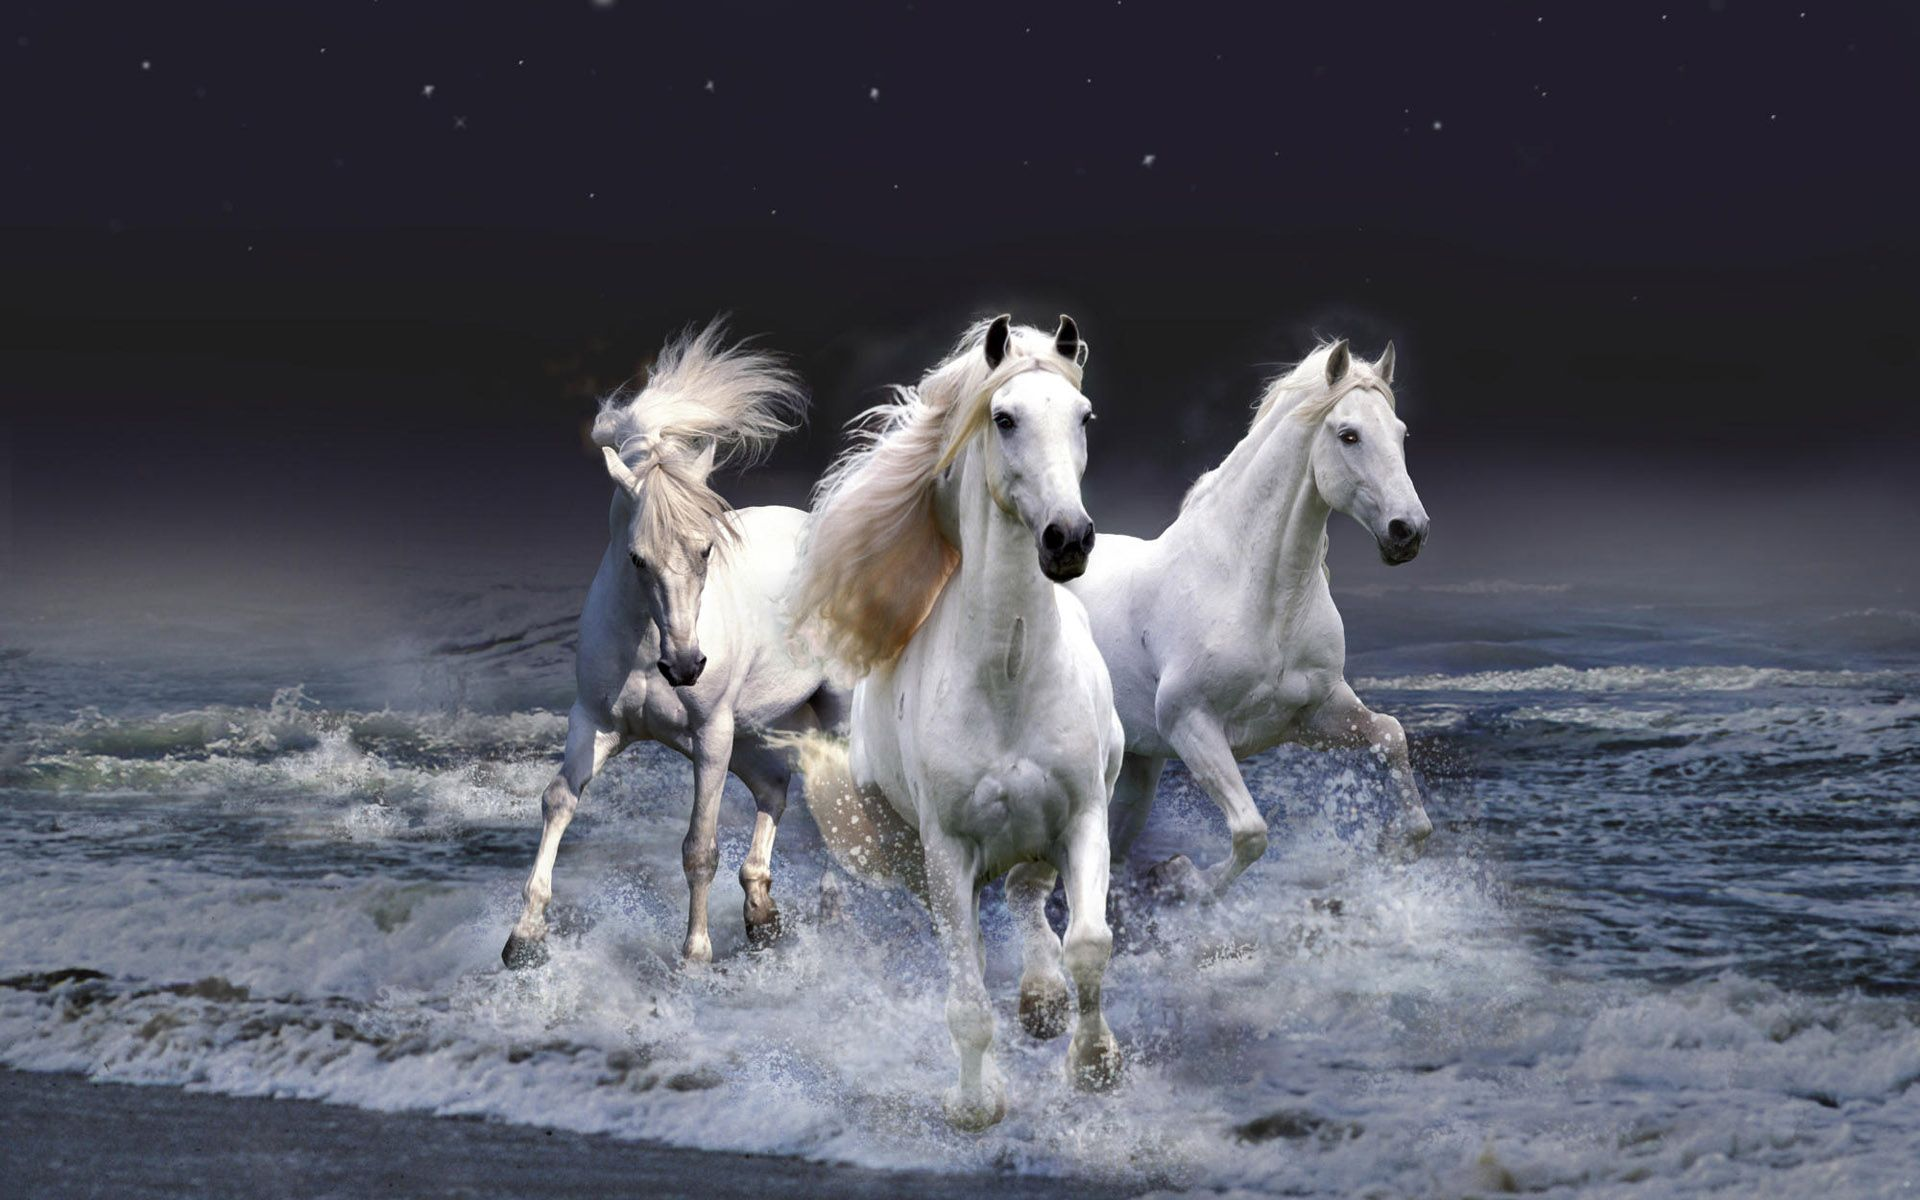 Download Wallpaper Horse Desert - 9869d6273b027318d53f233fec48bf6a  Graphic_494645.jpg